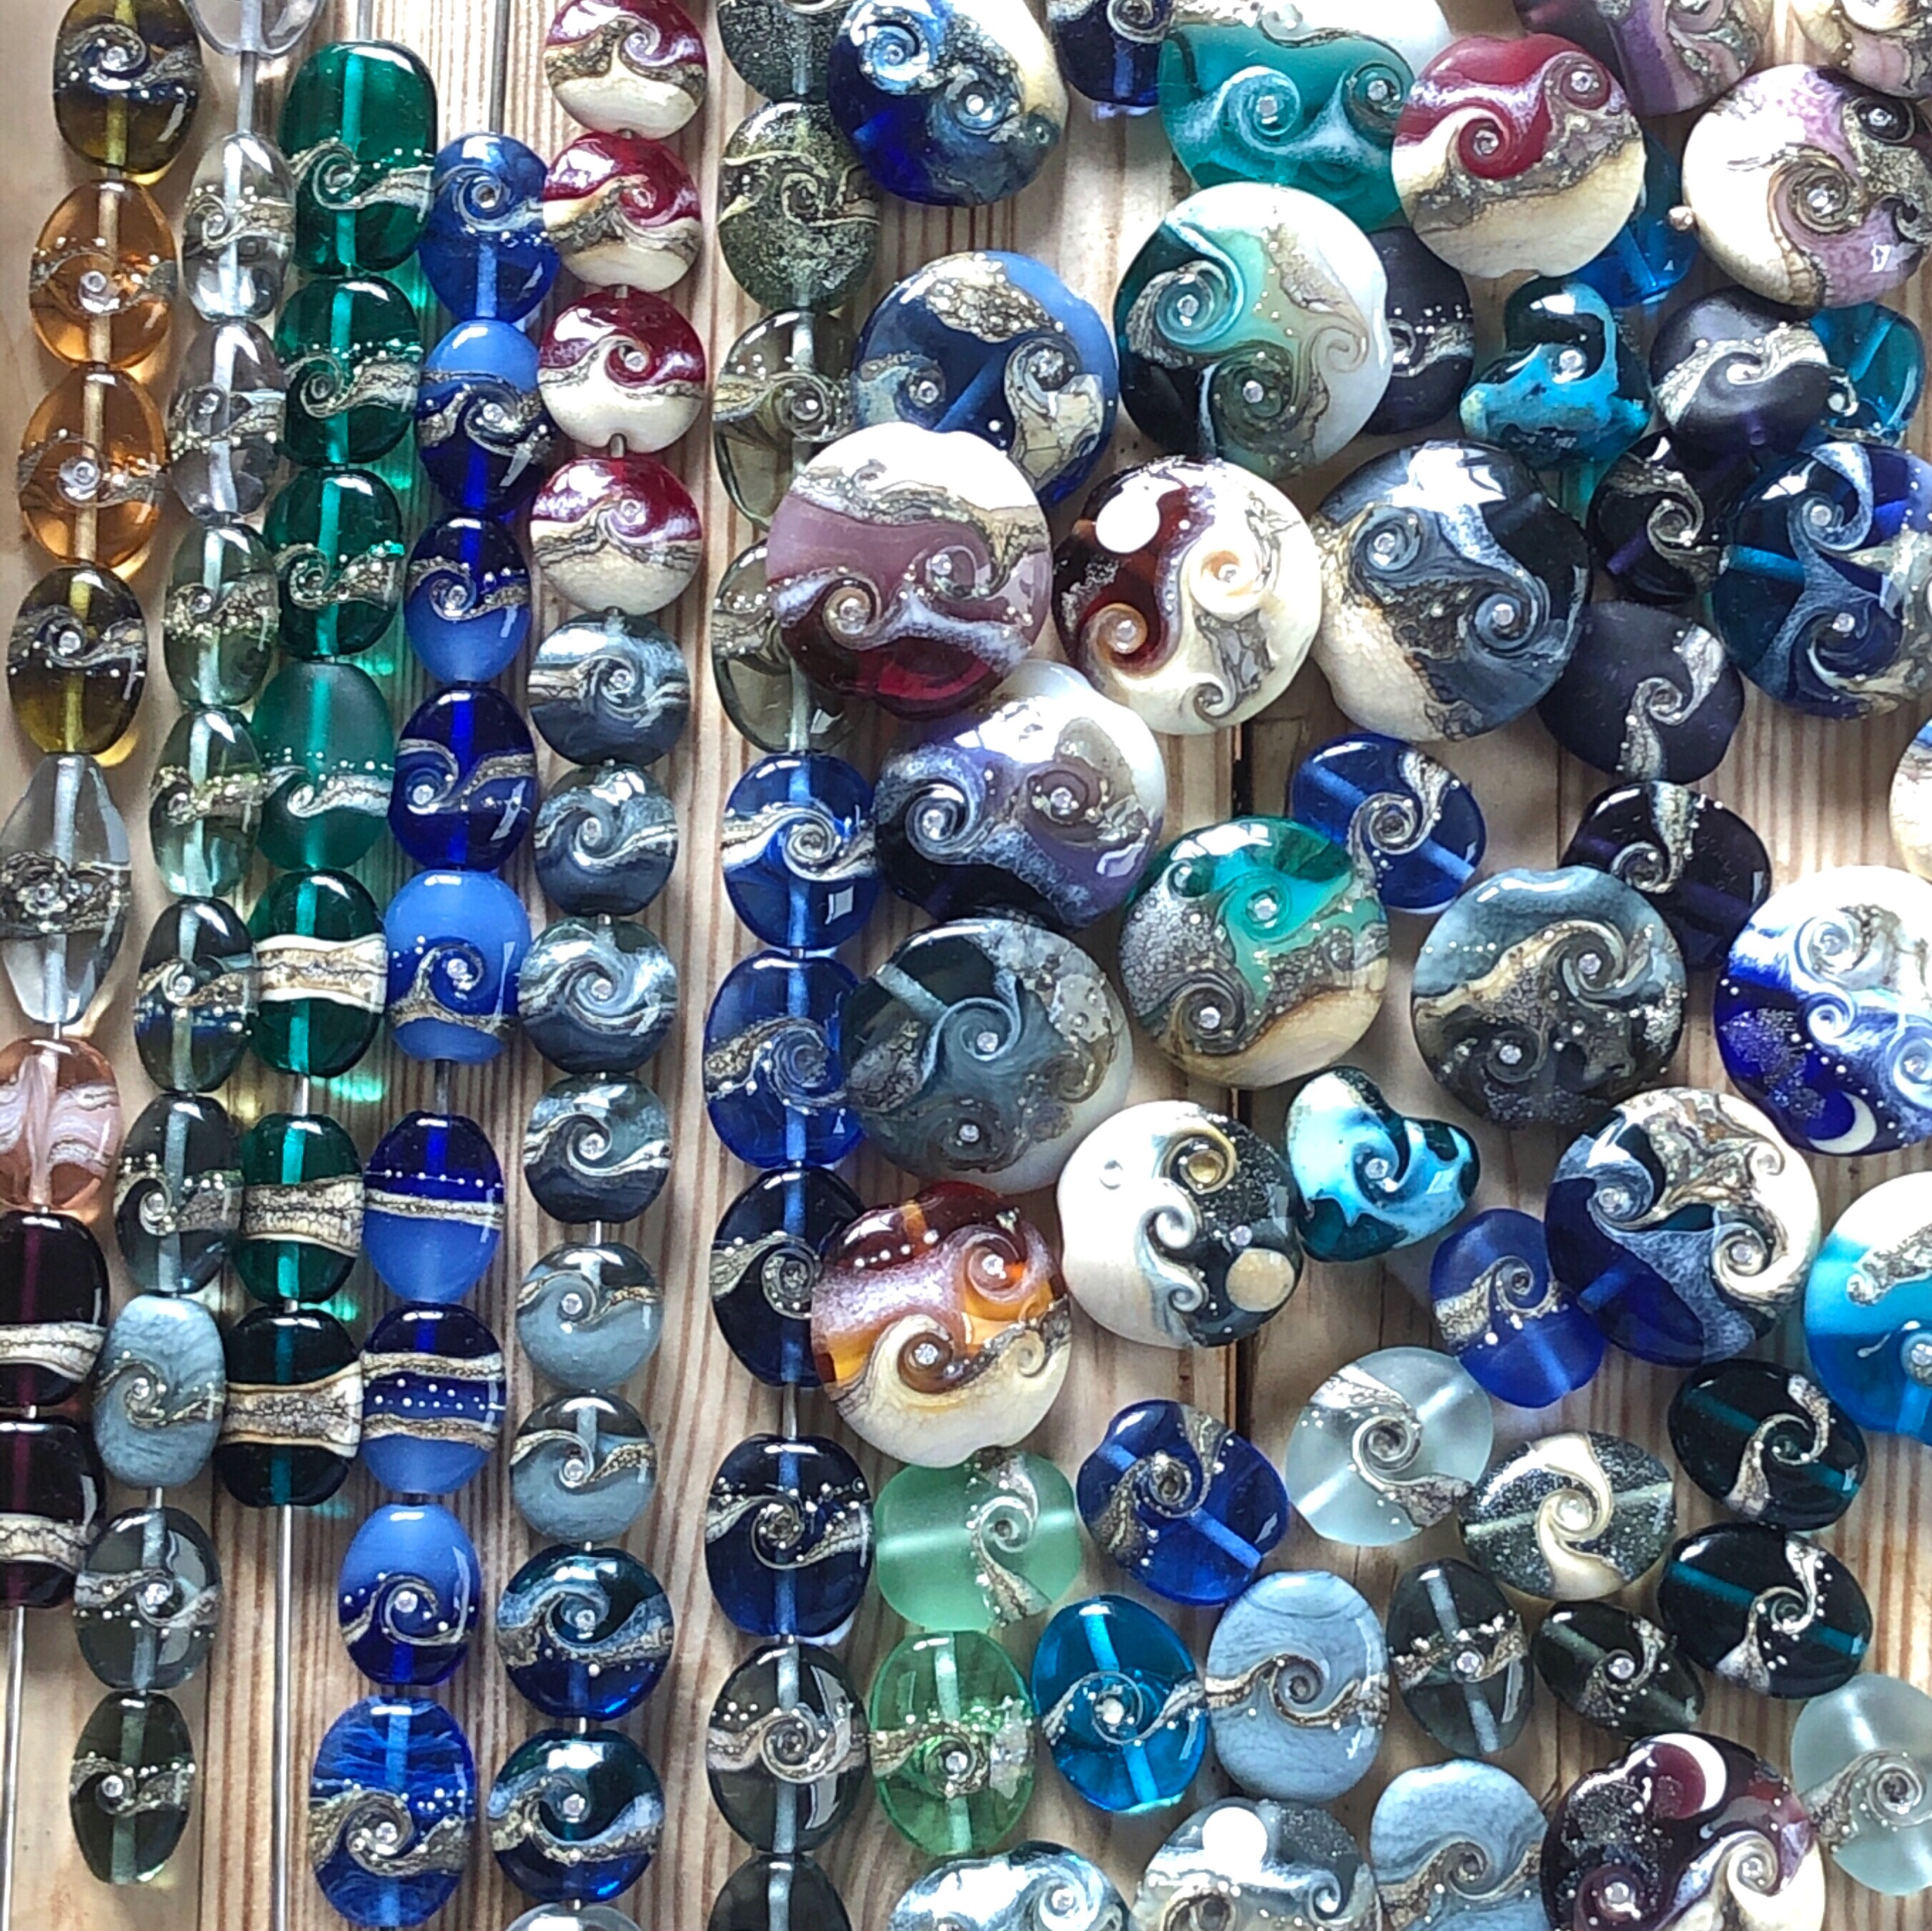 Mostly blue, grey and teal lampwork beads